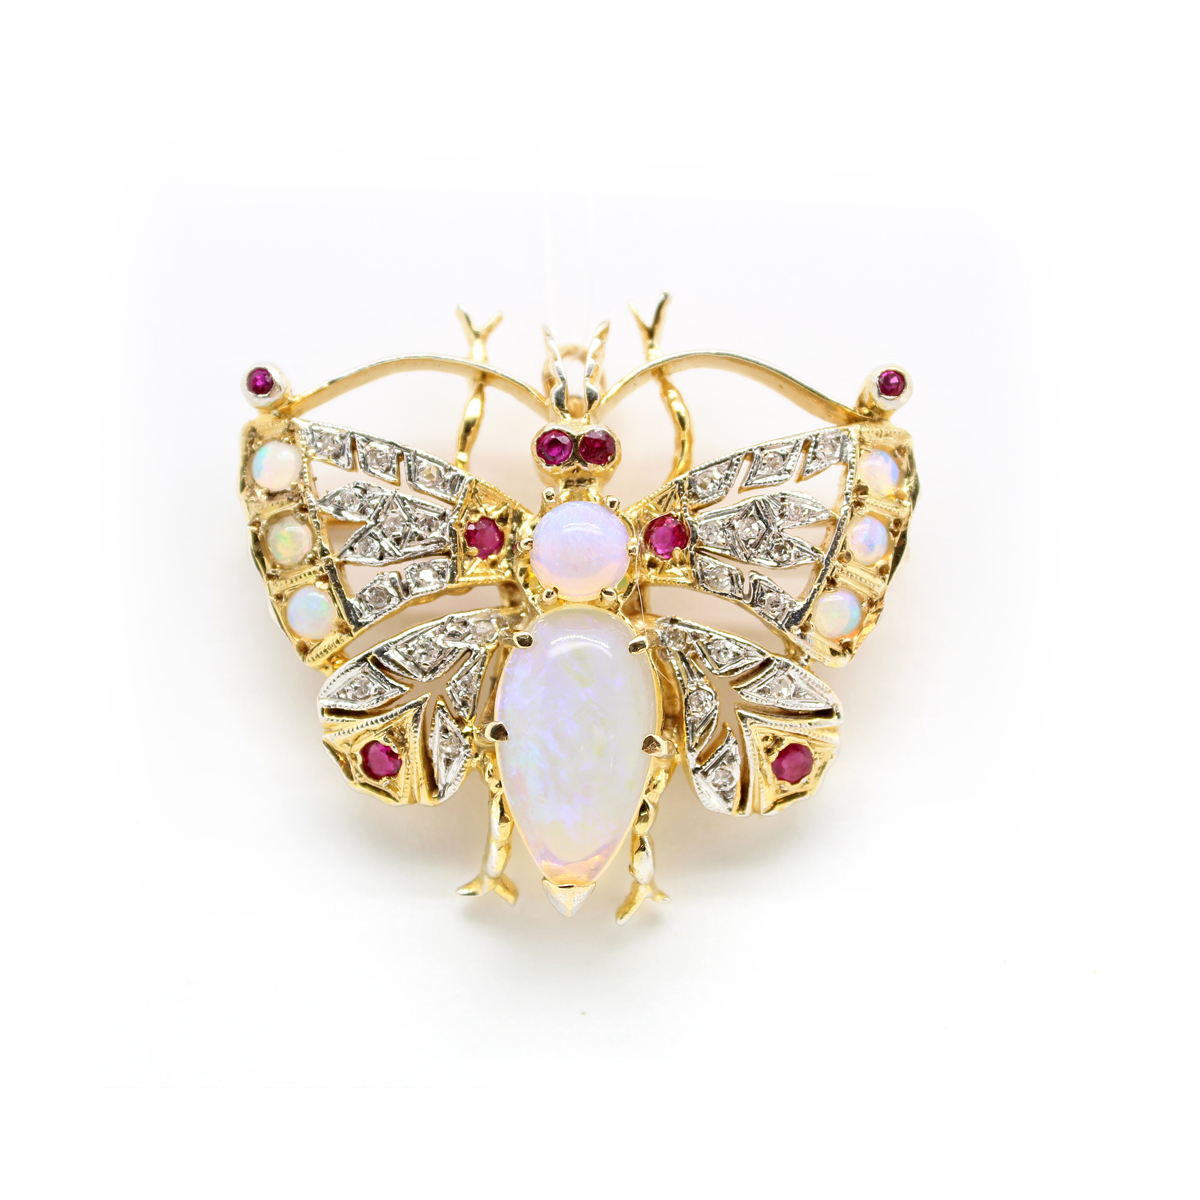 Vintage 14 Karat Yellow Gold Opal, Diamond and Ruby Butterfly Pin